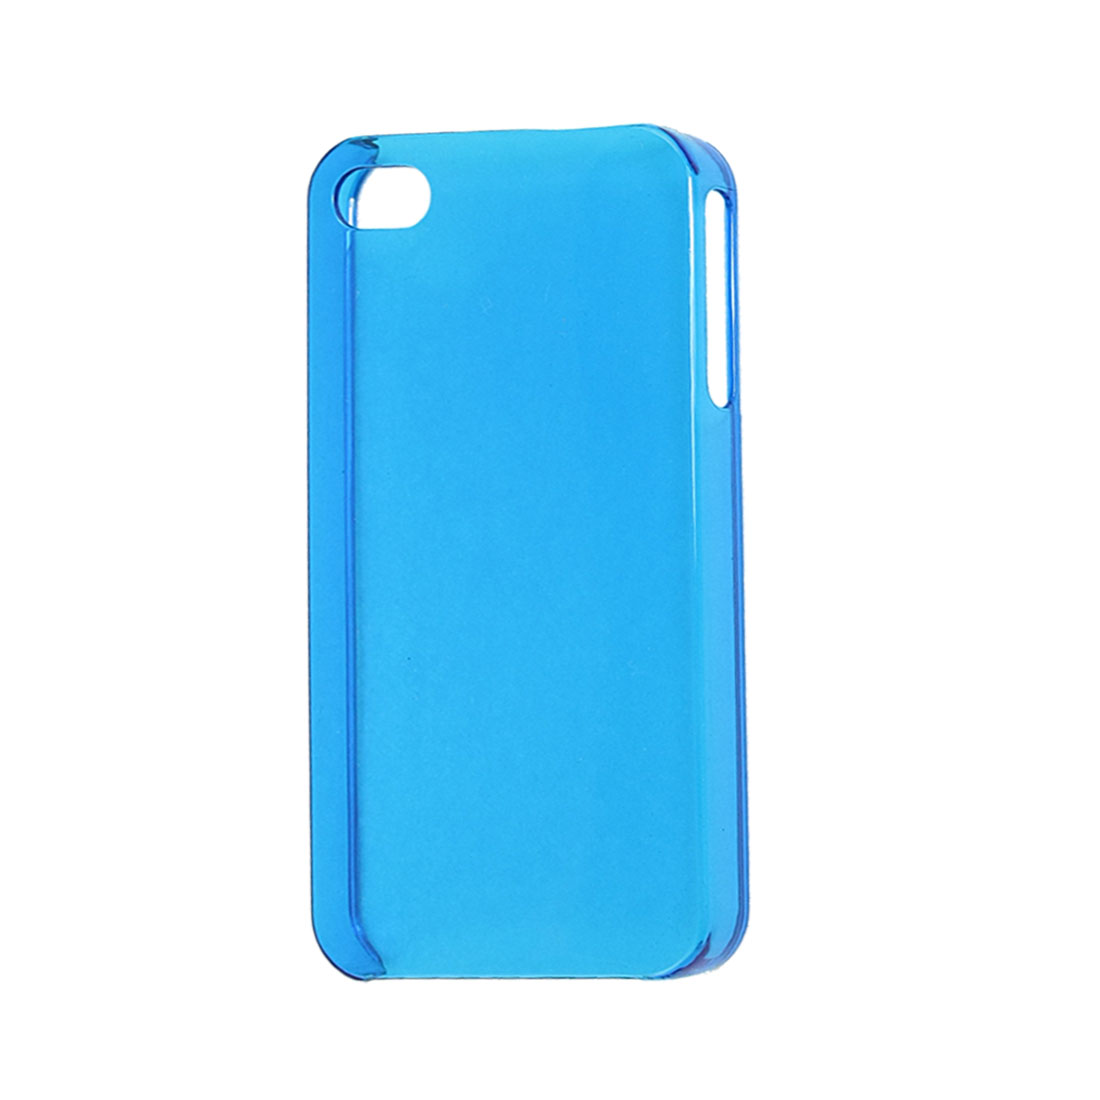 Clear Blue Hard Plastic Back Case Cover Protector for iPhone 4 4G 4S